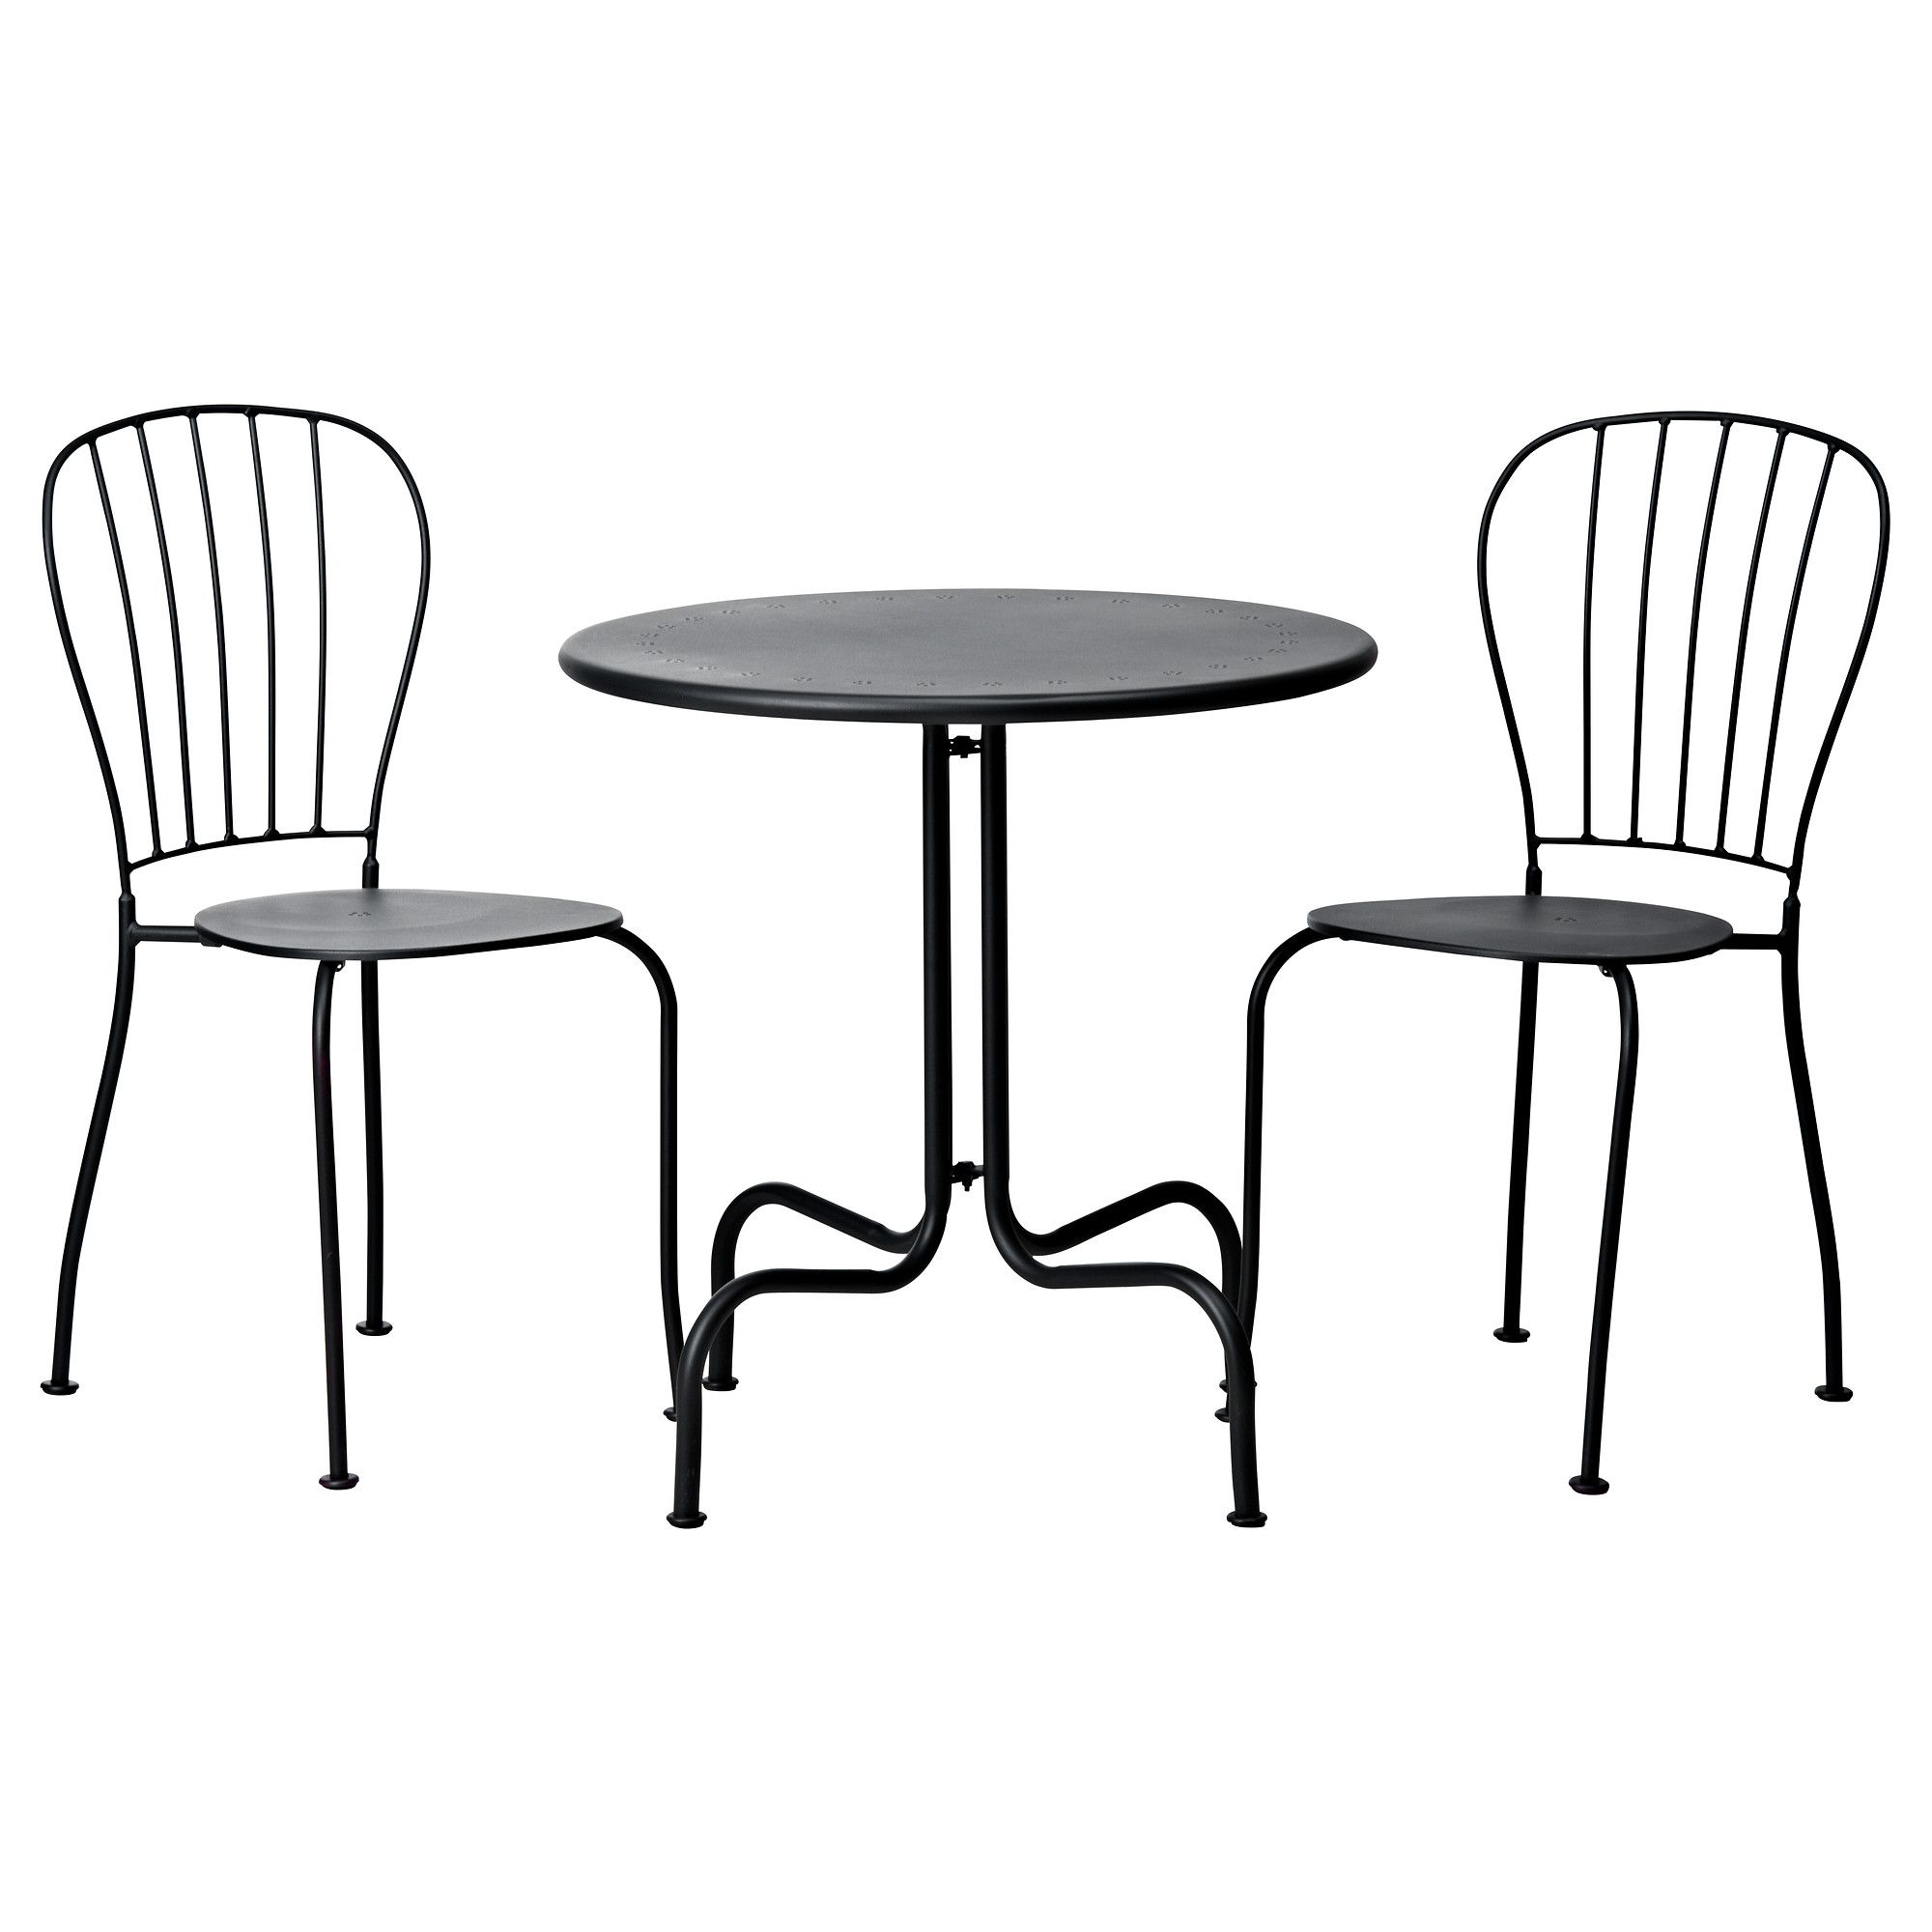 ... Bistro Set, , Easy To Keep Clean U2013 Just Wipe With A Damp Cloth.The  Drain Hole In The Seat Lets Water Drain Out.The Materials In This Outdoor  Furniture ...